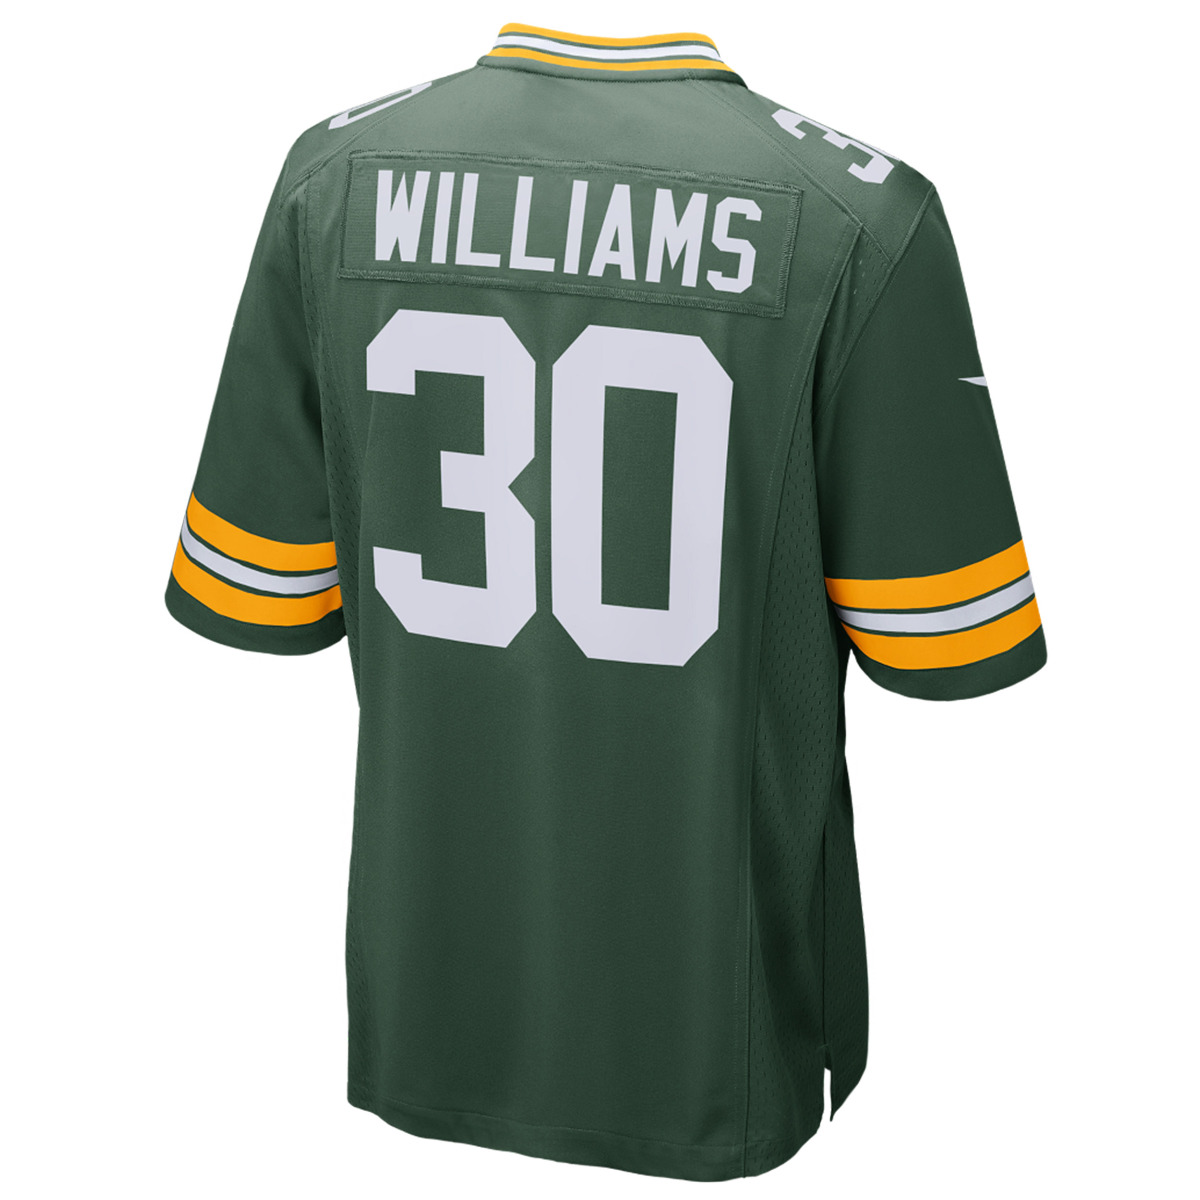 #30 Jamaal Williams Home Game Jersey